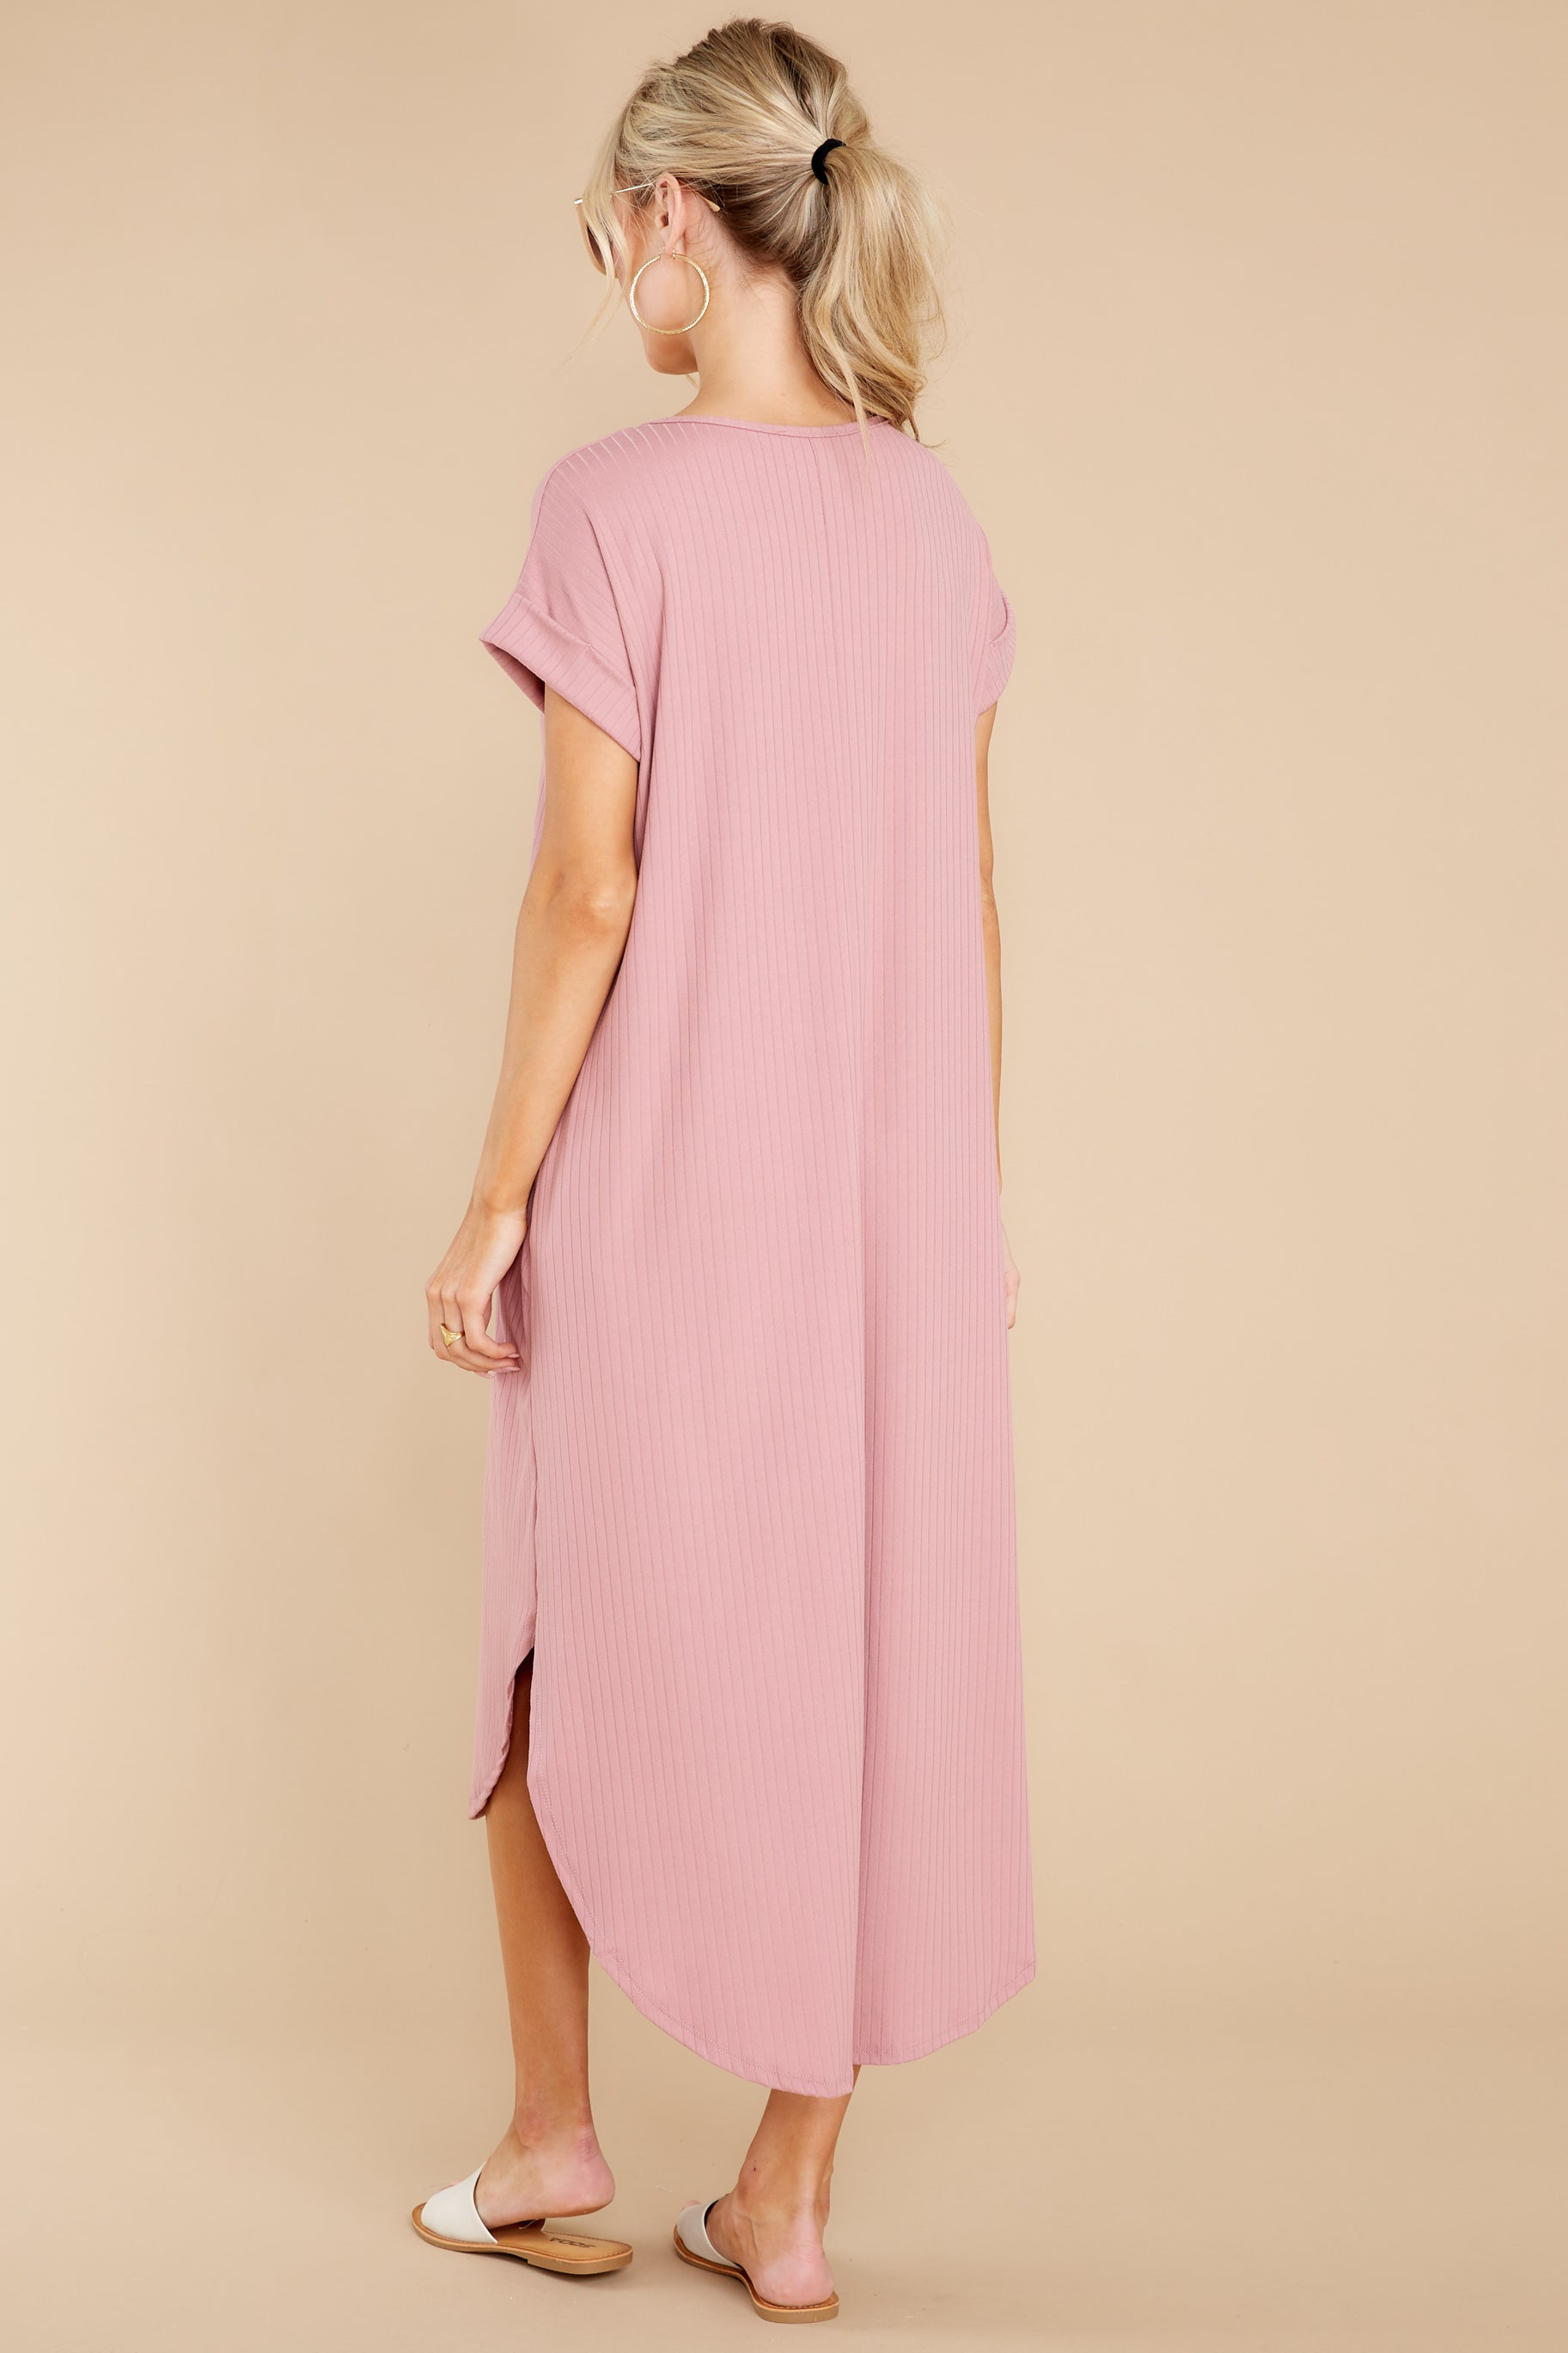 8 Come Away With Me Mauve Blush Midi Dress at reddress.com